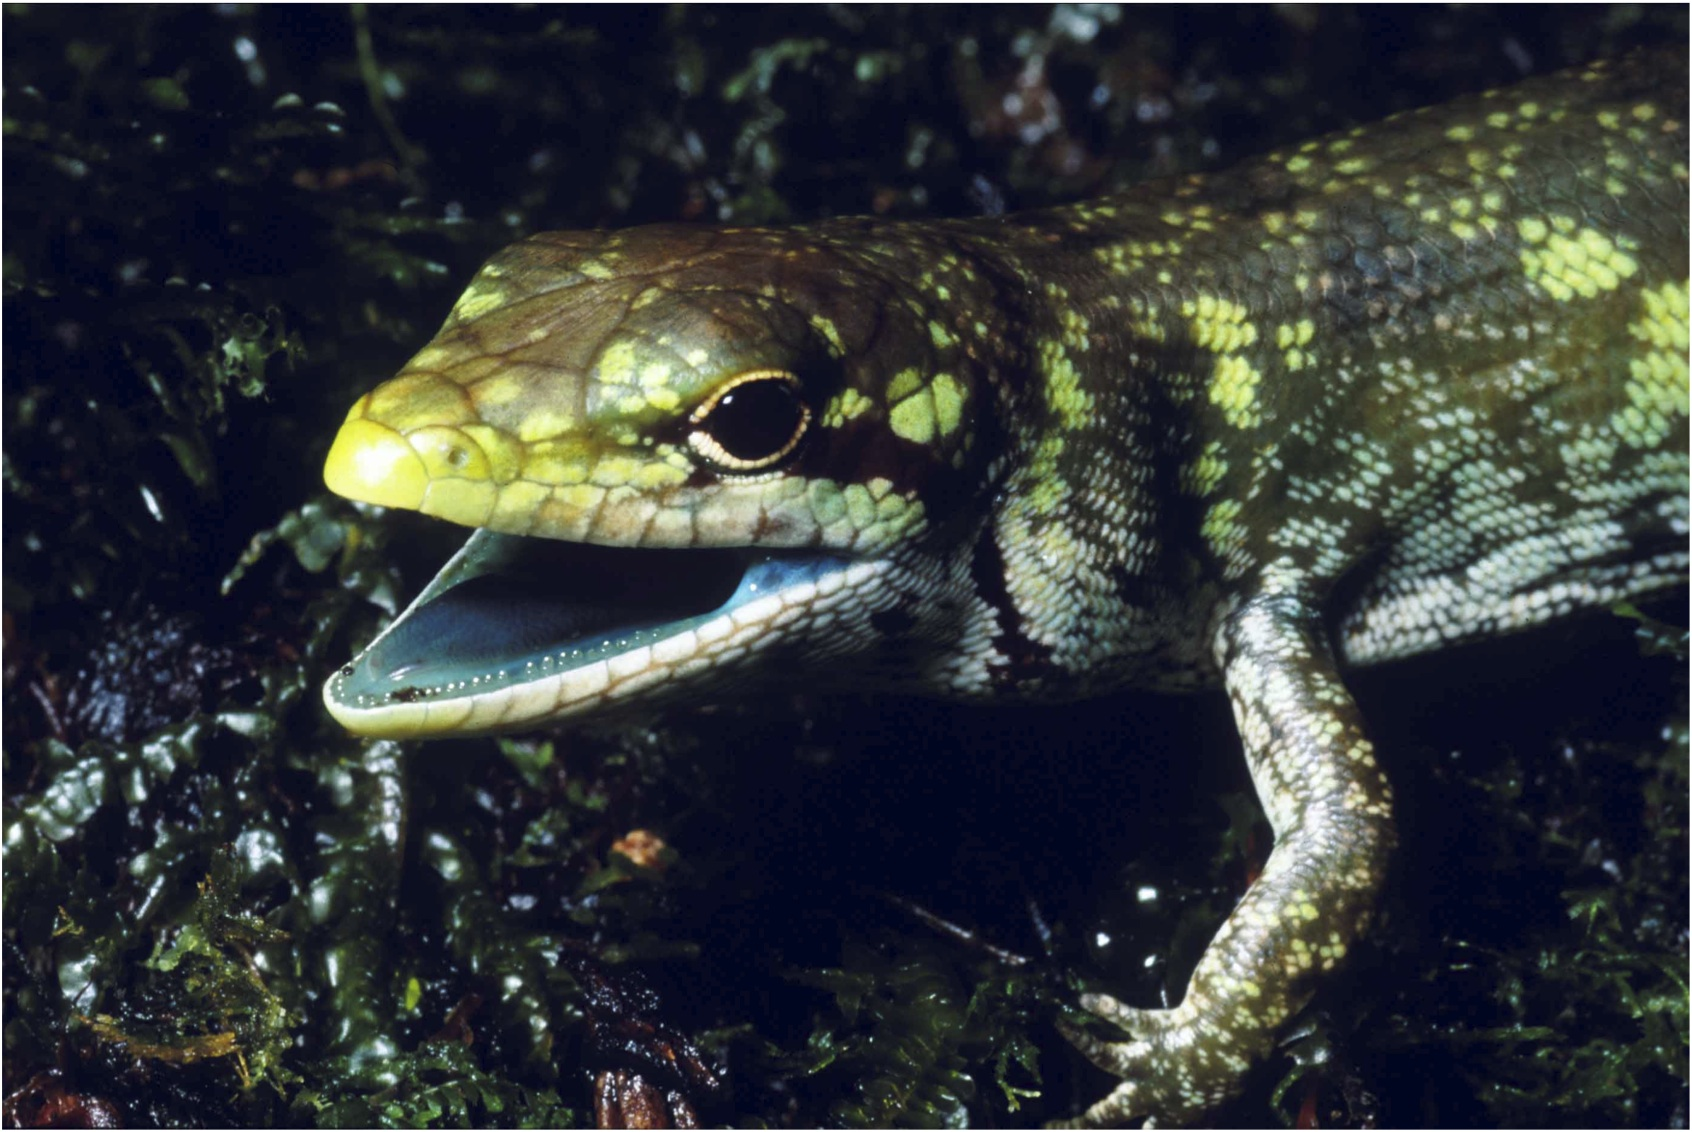 Purple, Gold and    Green? These Lizards Have Crazy Levels